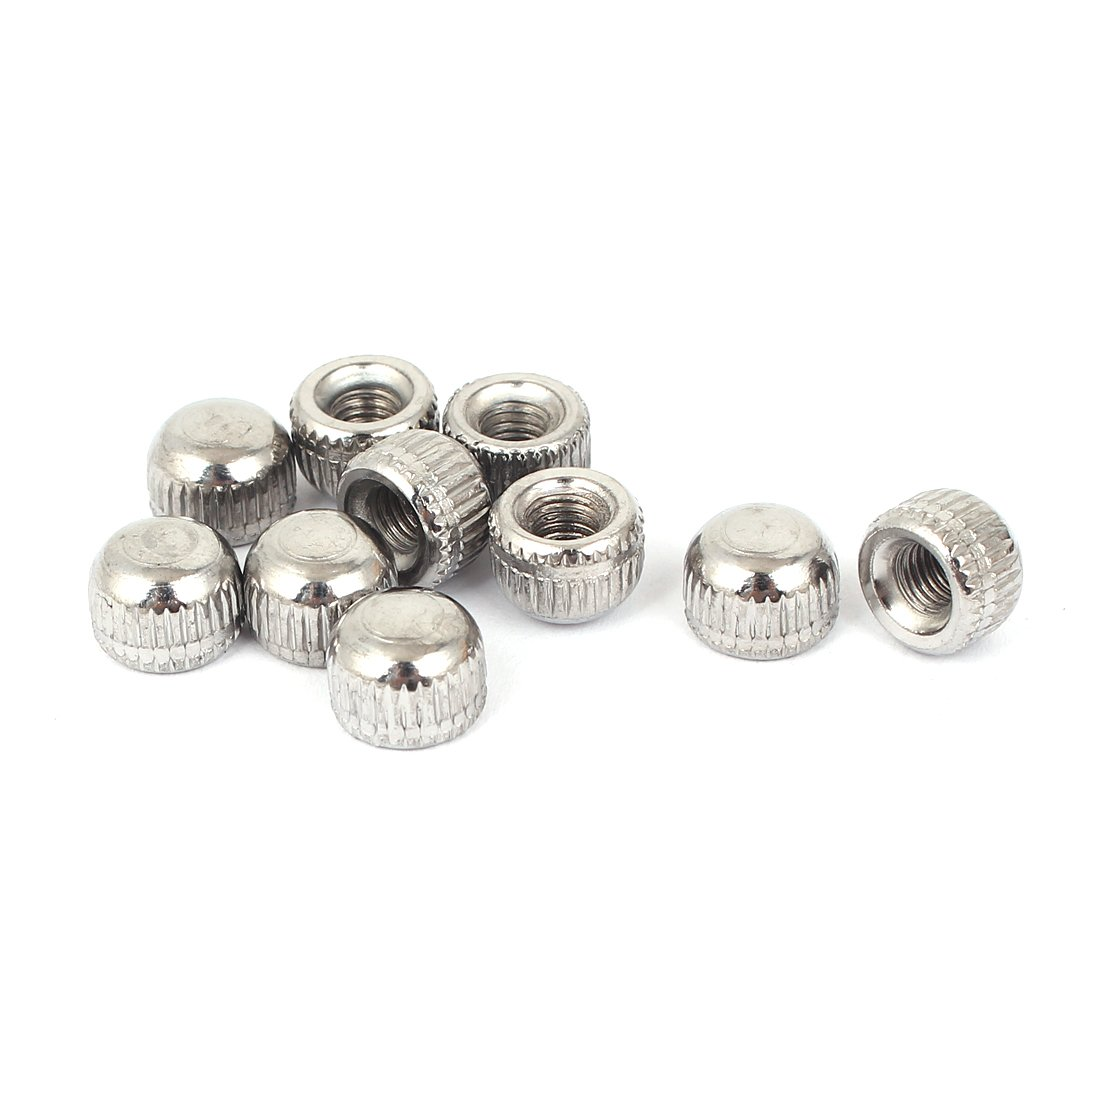 uxcell M5 Female Thread Cap Acorn Shaped Nut Lamps Fittings Silver Tone 10pcs a16012900ux0907